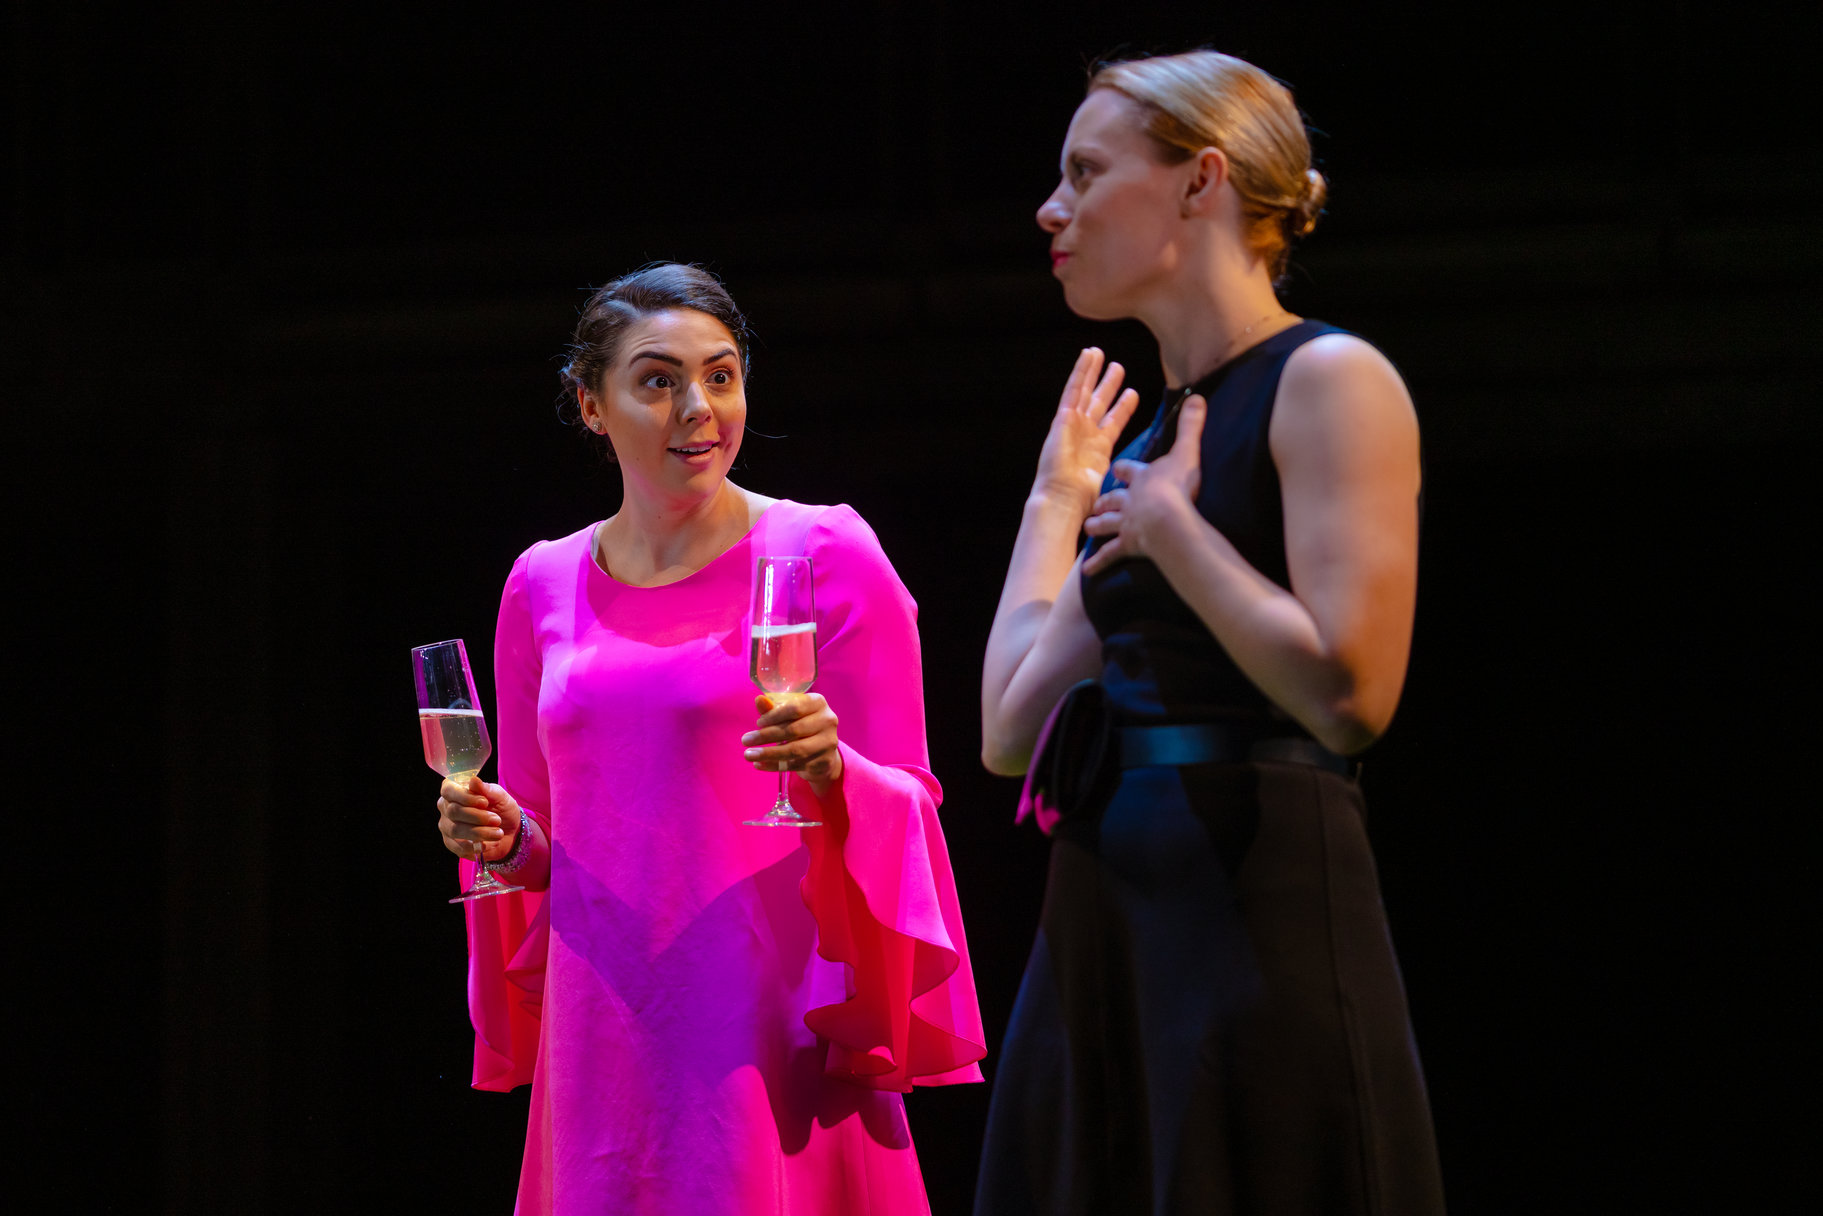 Celia and Rosalind in nice dresses, with champagne flutes.